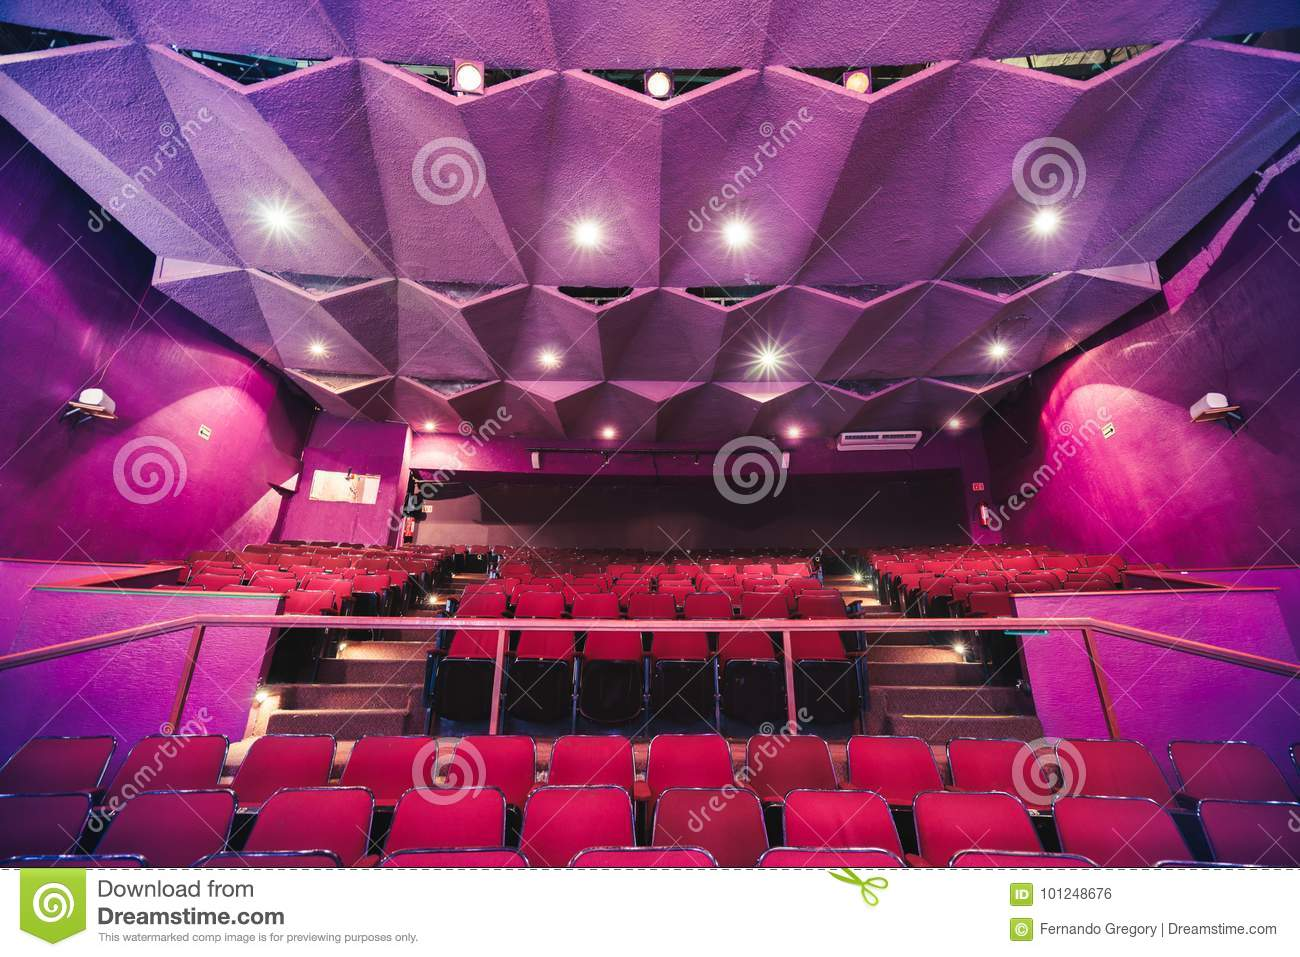 Theater seats with dramatic lighting